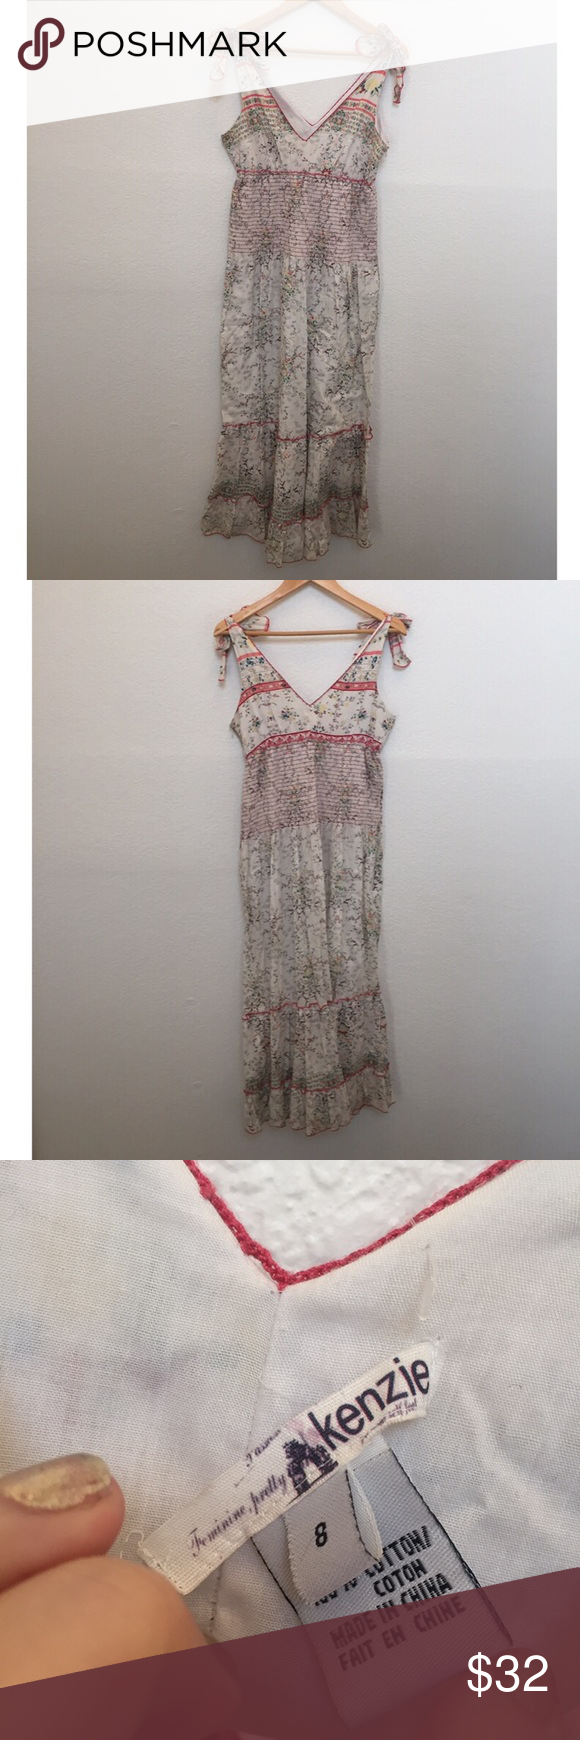 Kenzie smocked maxi dress Beautiful smocked maxi dress, adjustable tie at shoulders kenzie Dresses Maxi